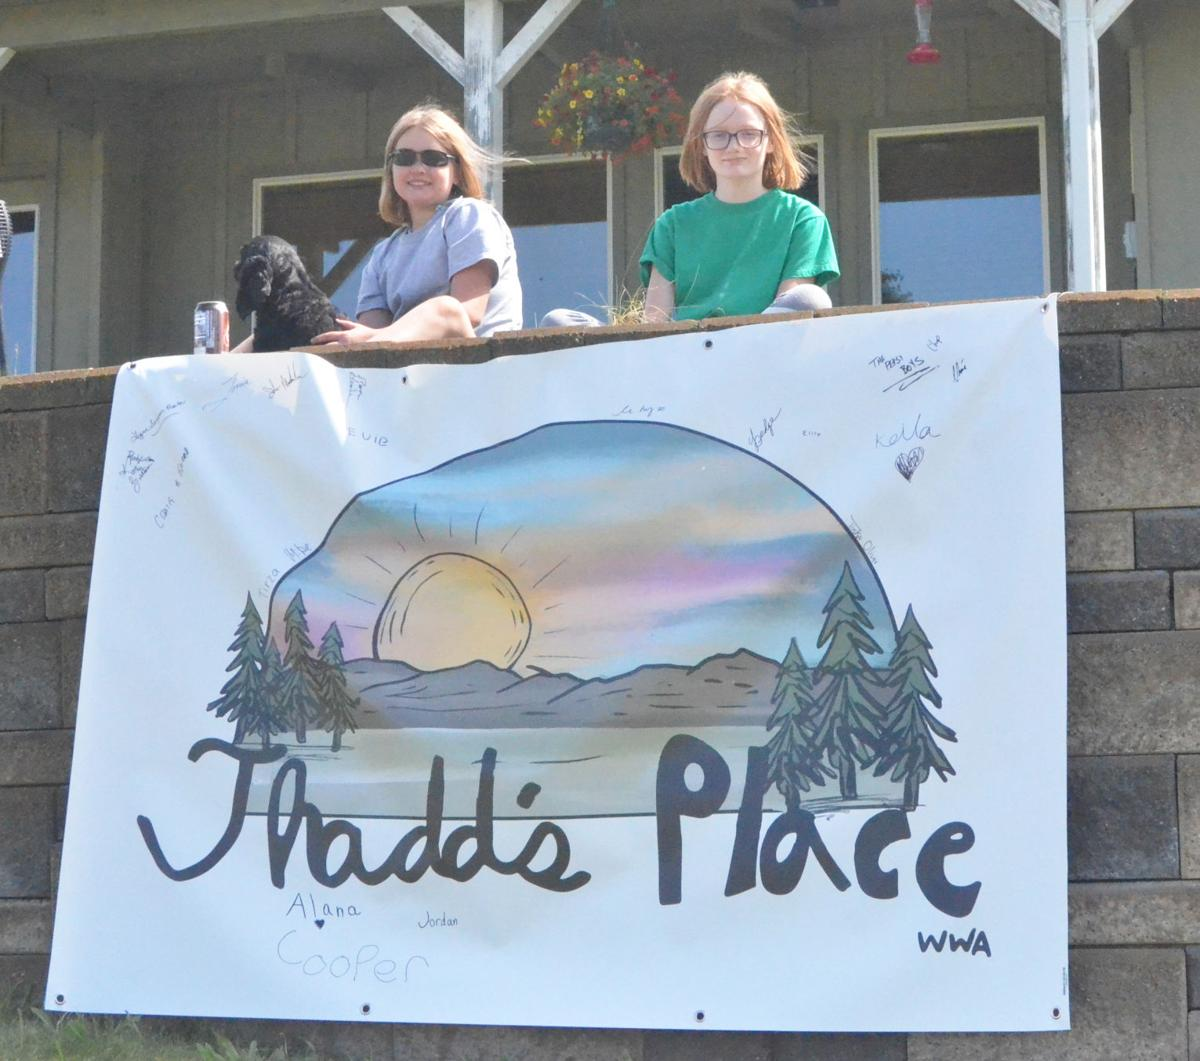 Thadd's Place sign